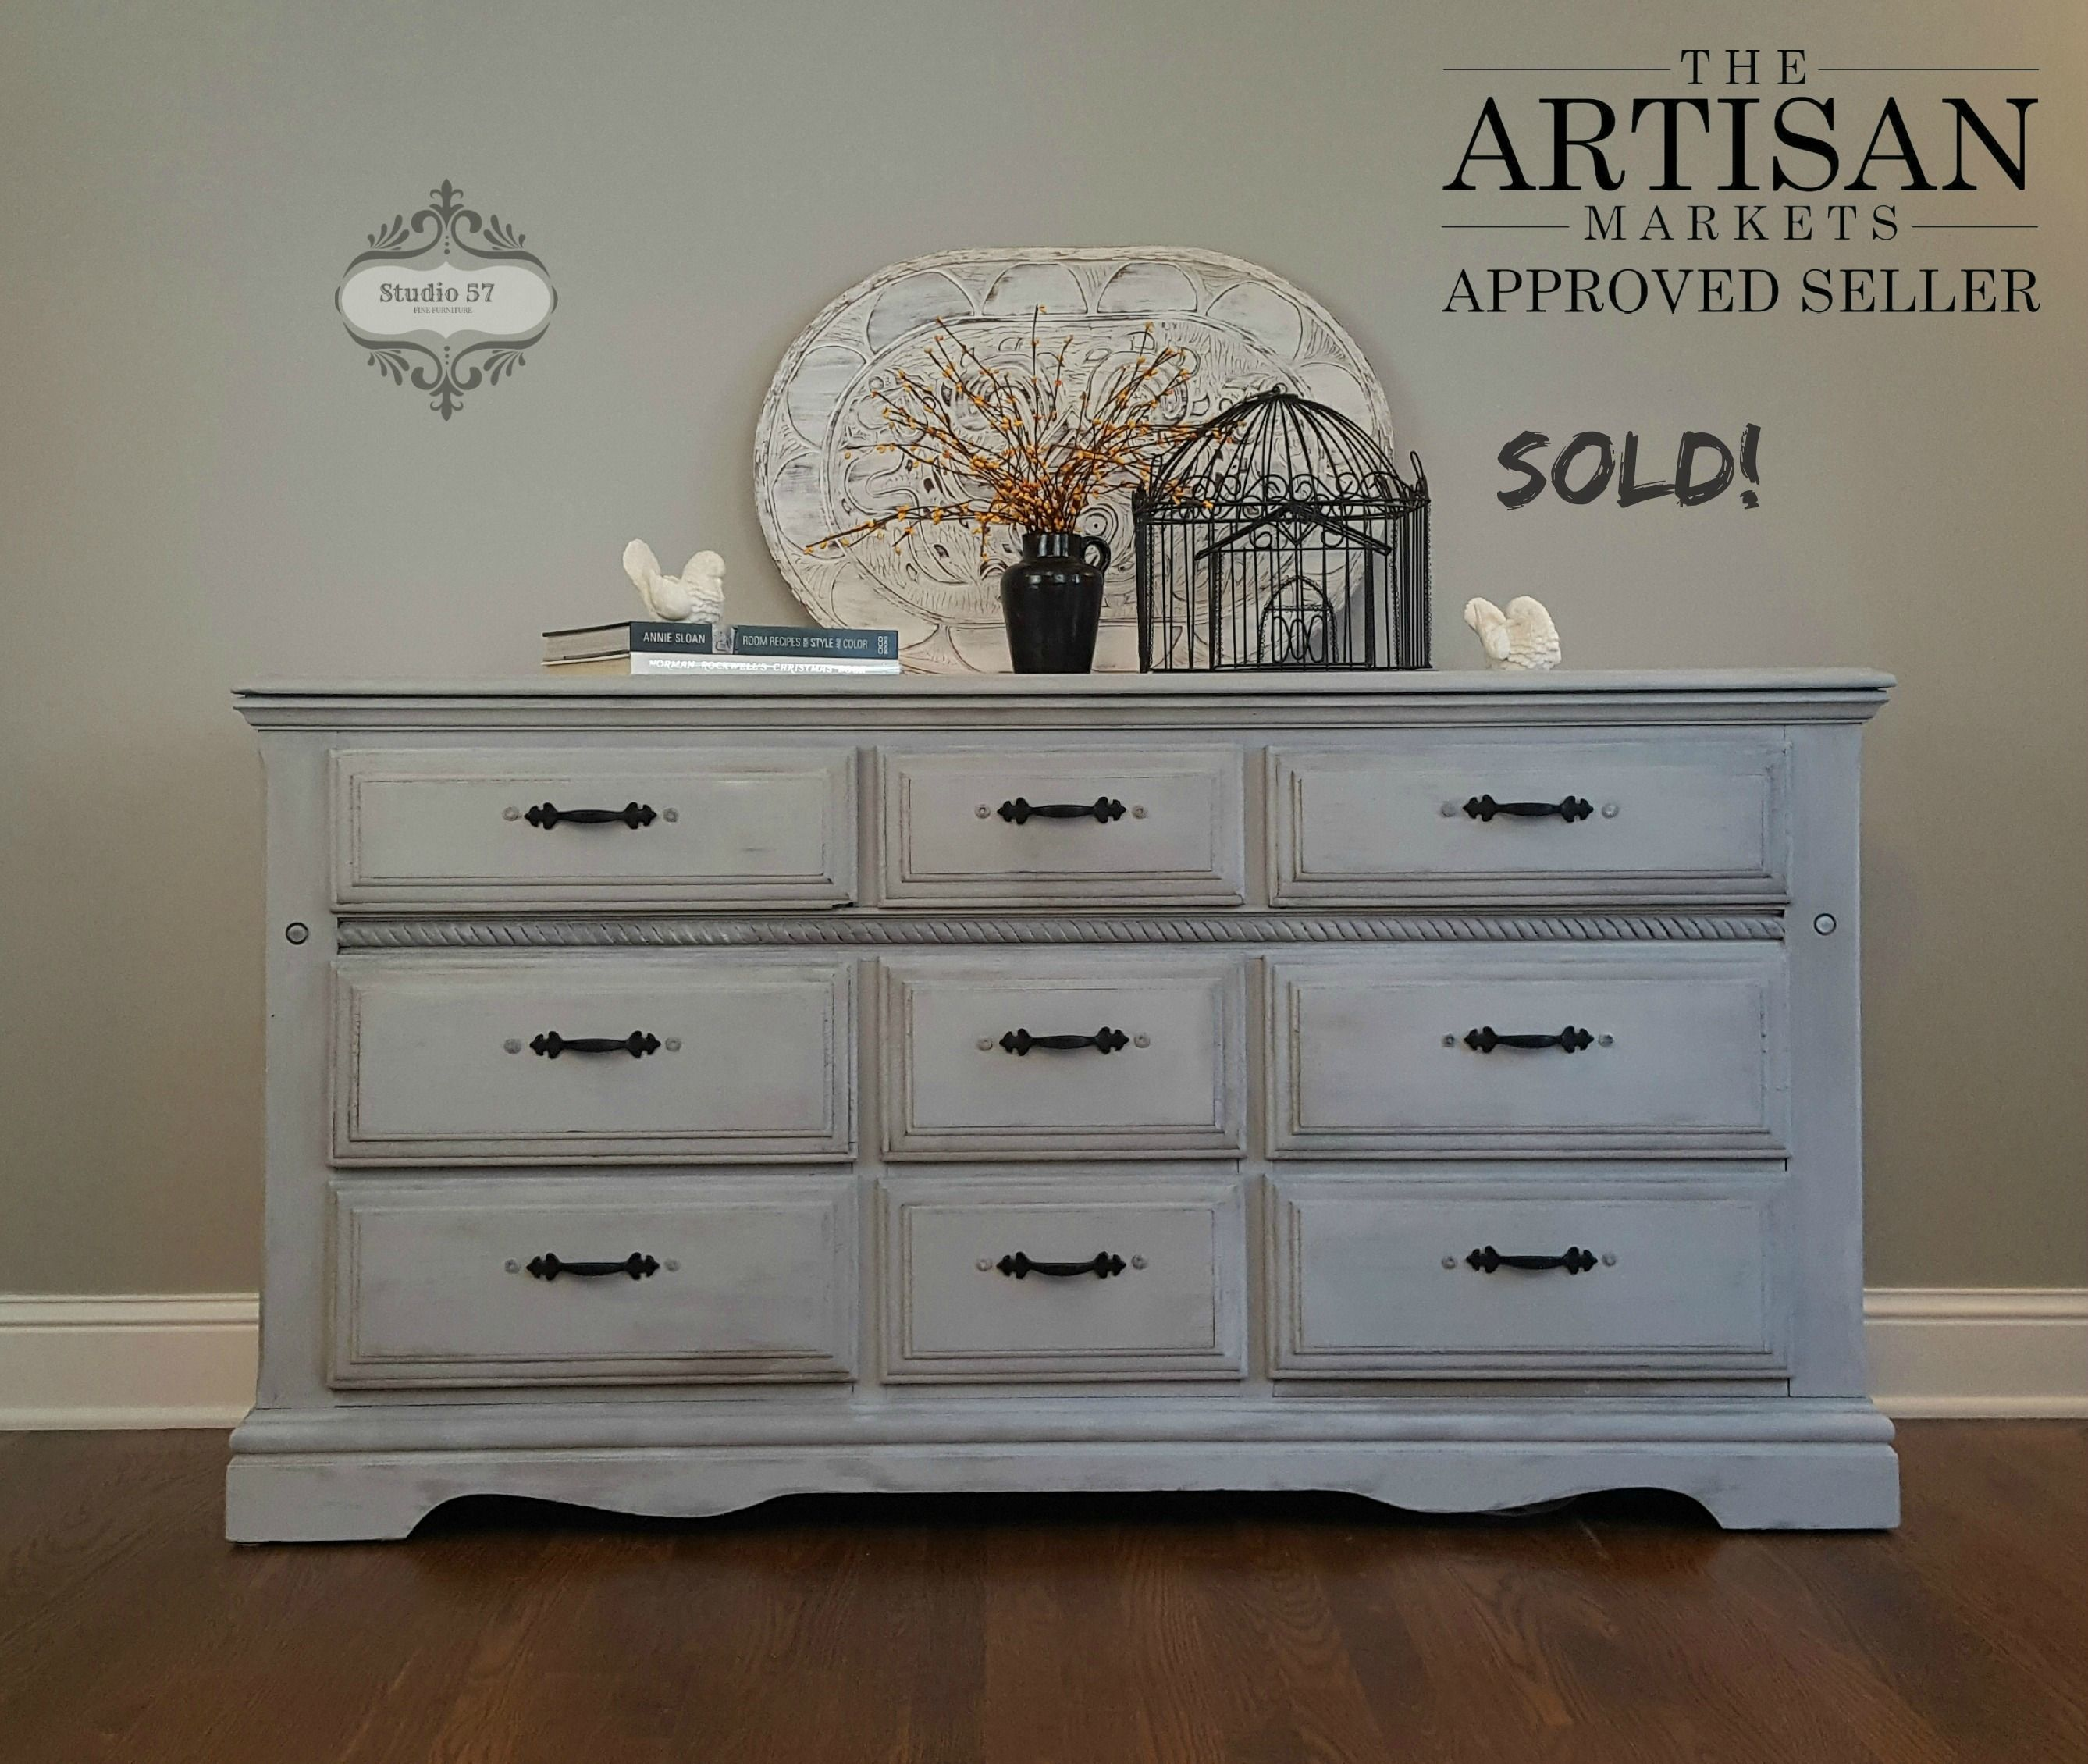 Vintage Dresser Finished In Annie Sloan Products Base Coat Of French Linen And Washed With Paris Grey Clear Wax Vintage Dressers Paris Grey Studio 57 [ 2260 x 2675 Pixel ]